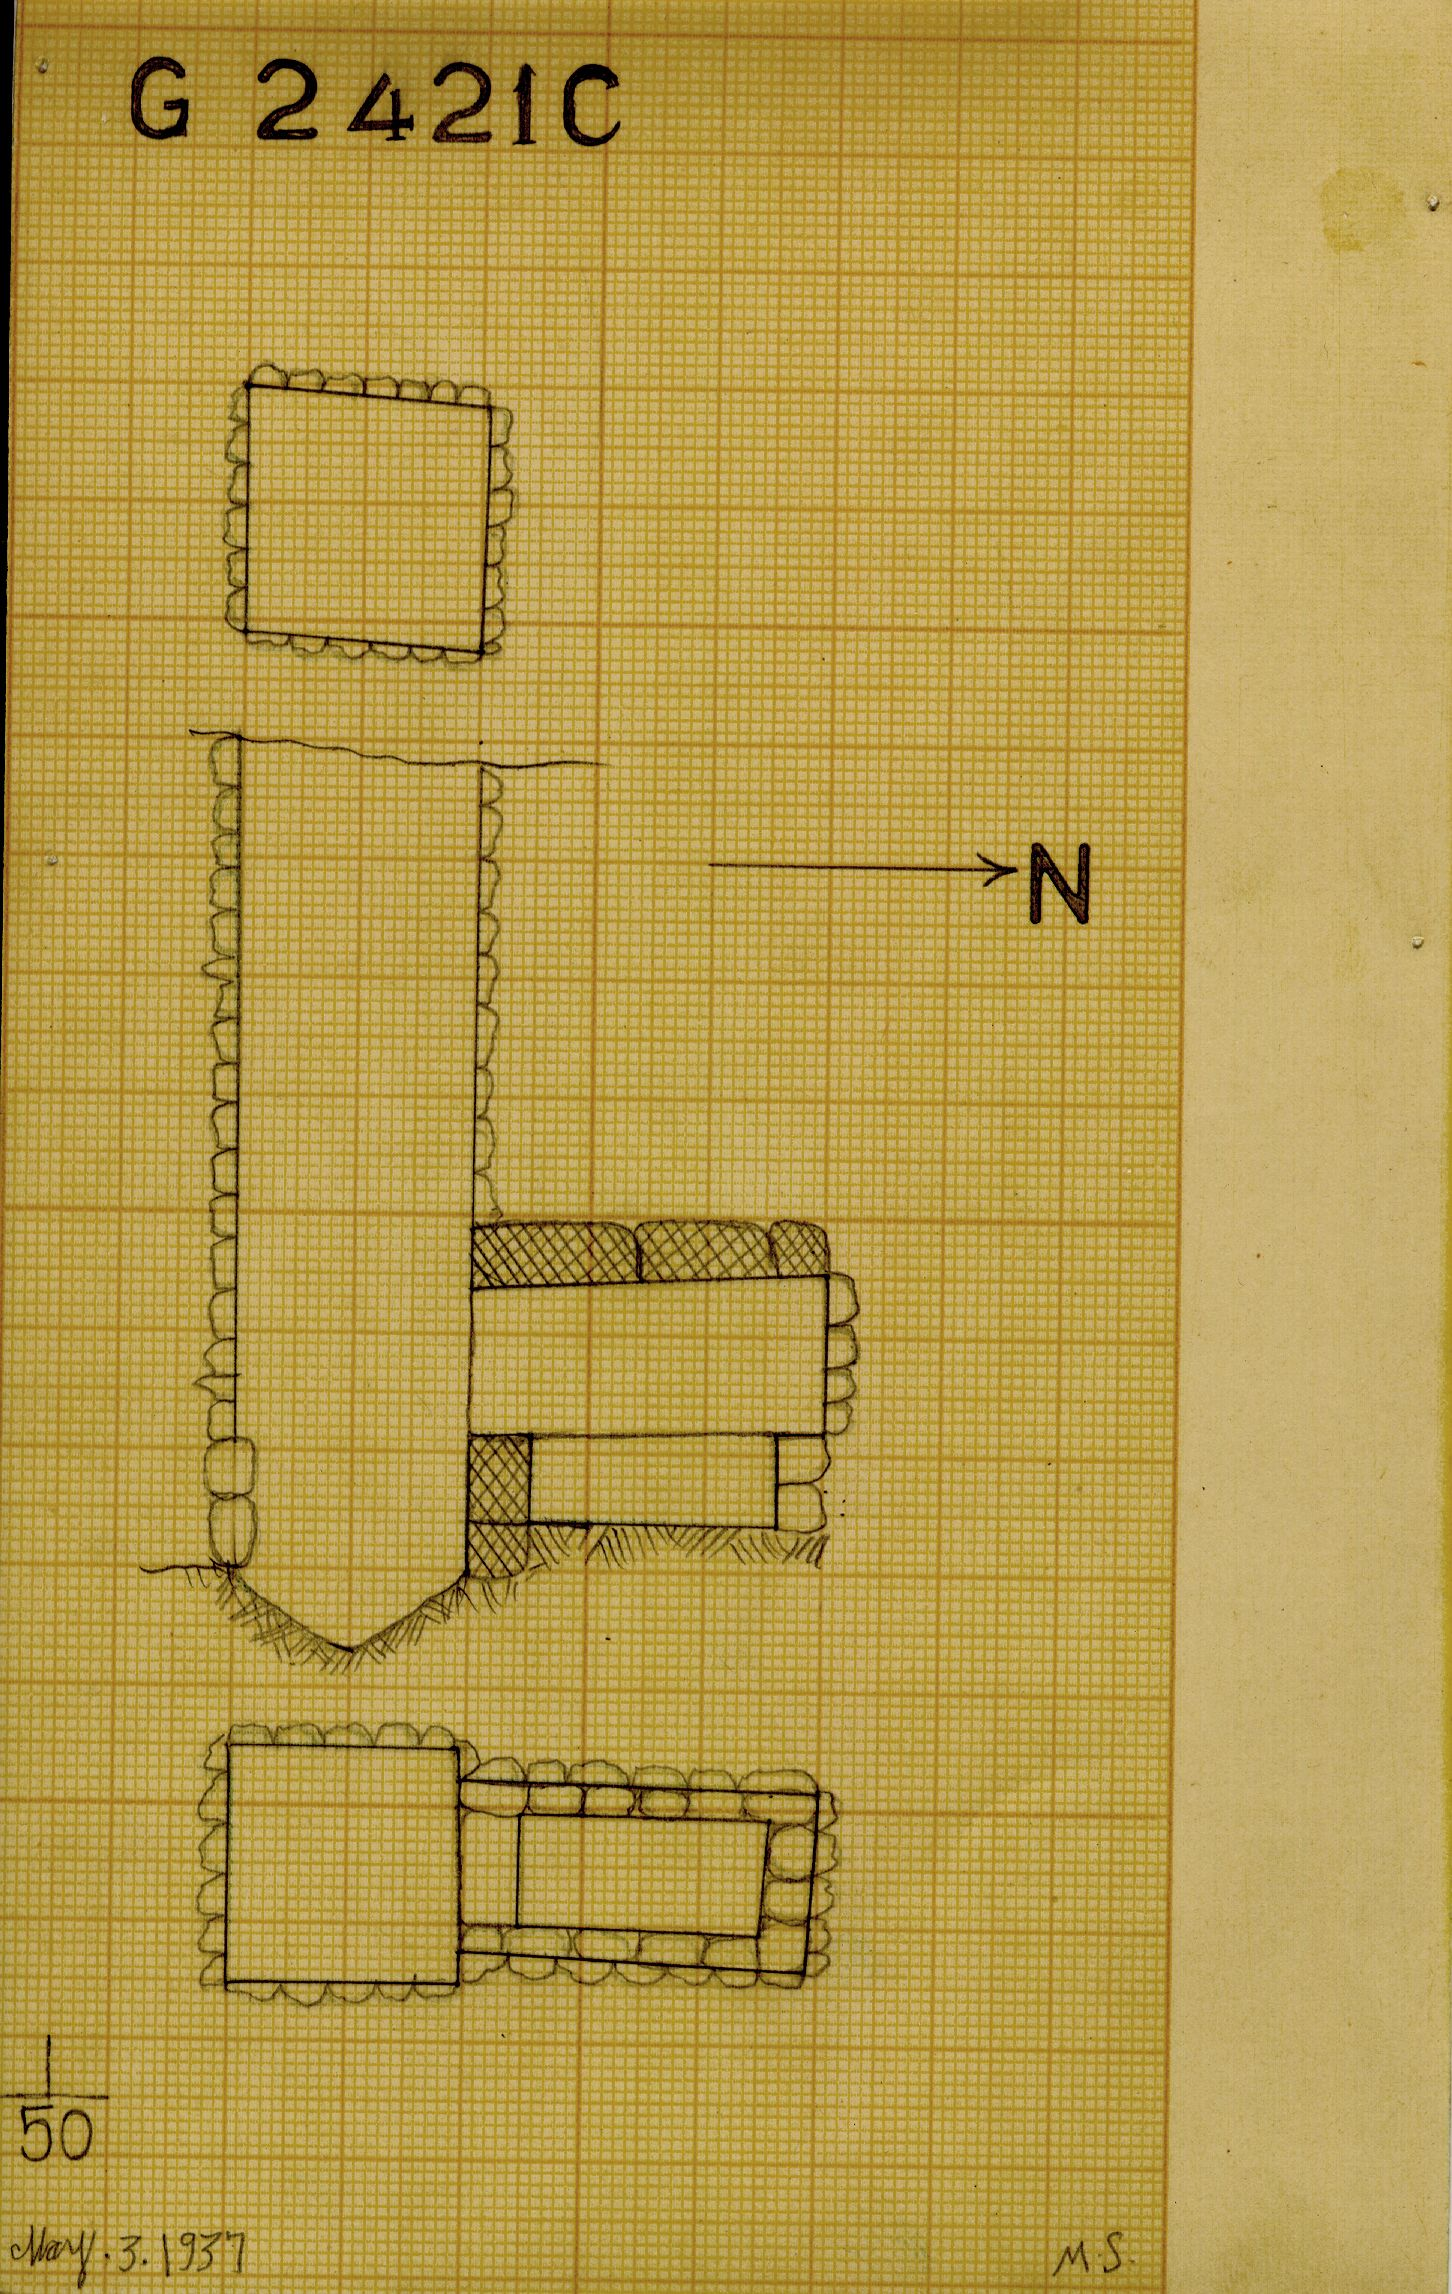 Maps and plans: G 2421, Shaft C